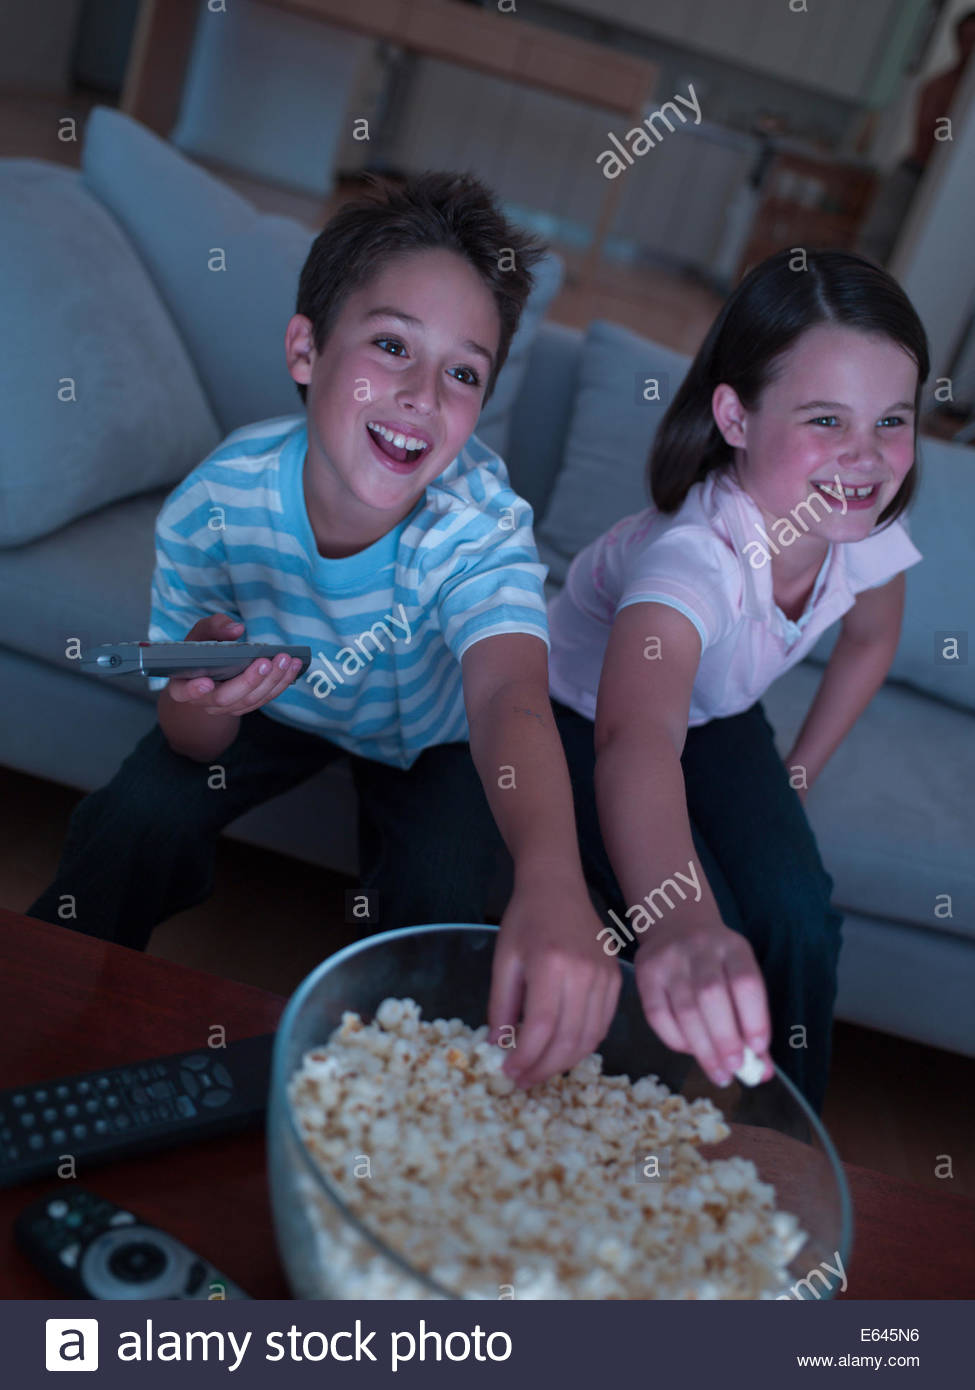 Boy and girl eating popcorn and watching TV - Stock Image